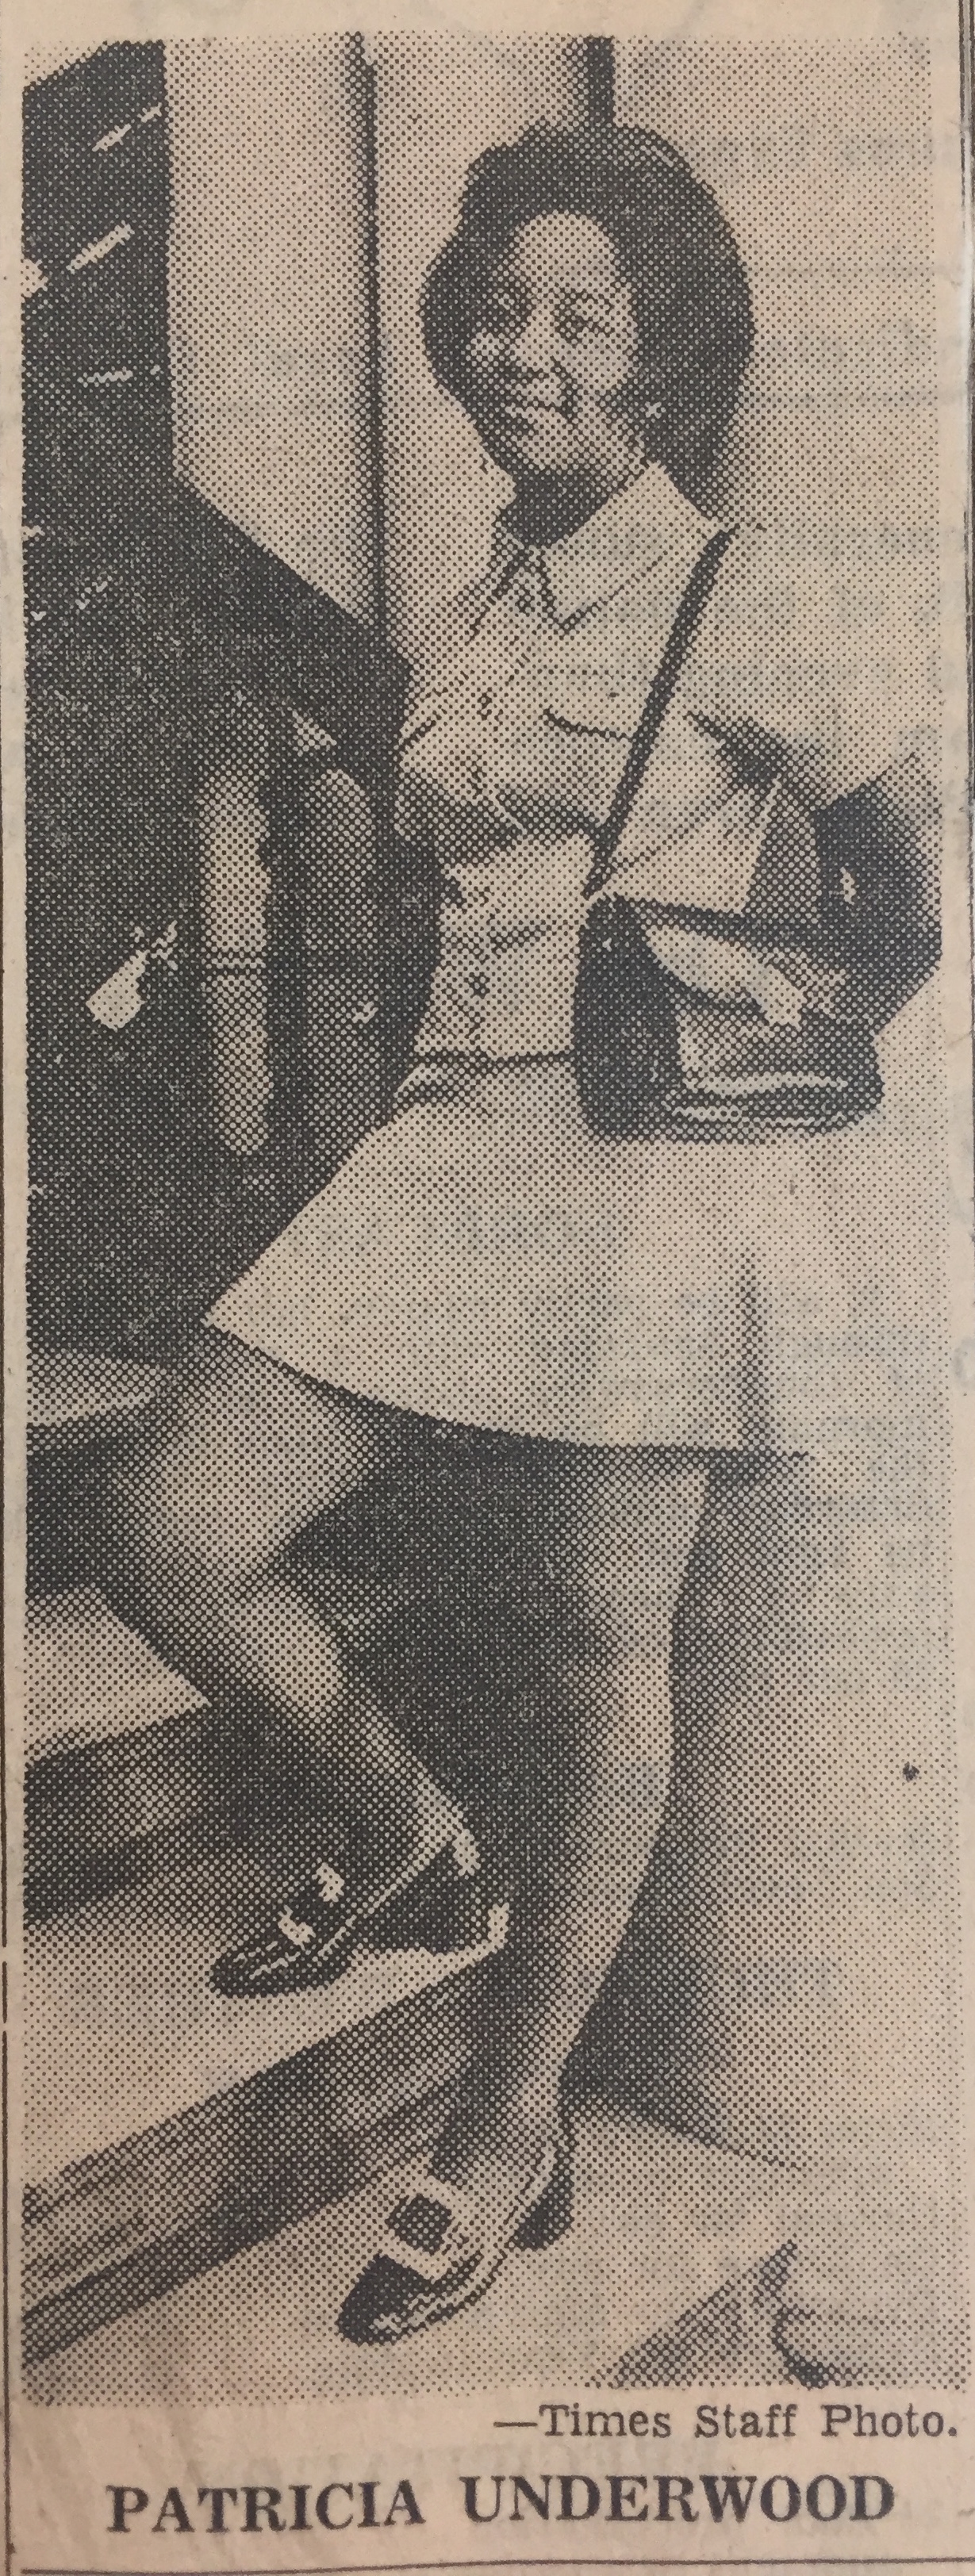 A photo of Patricia Underwood Williams standing on the steps of City Hall appears in a Chattanooga Times article from July 9, 1971. (Chattanooga Public Library archives)